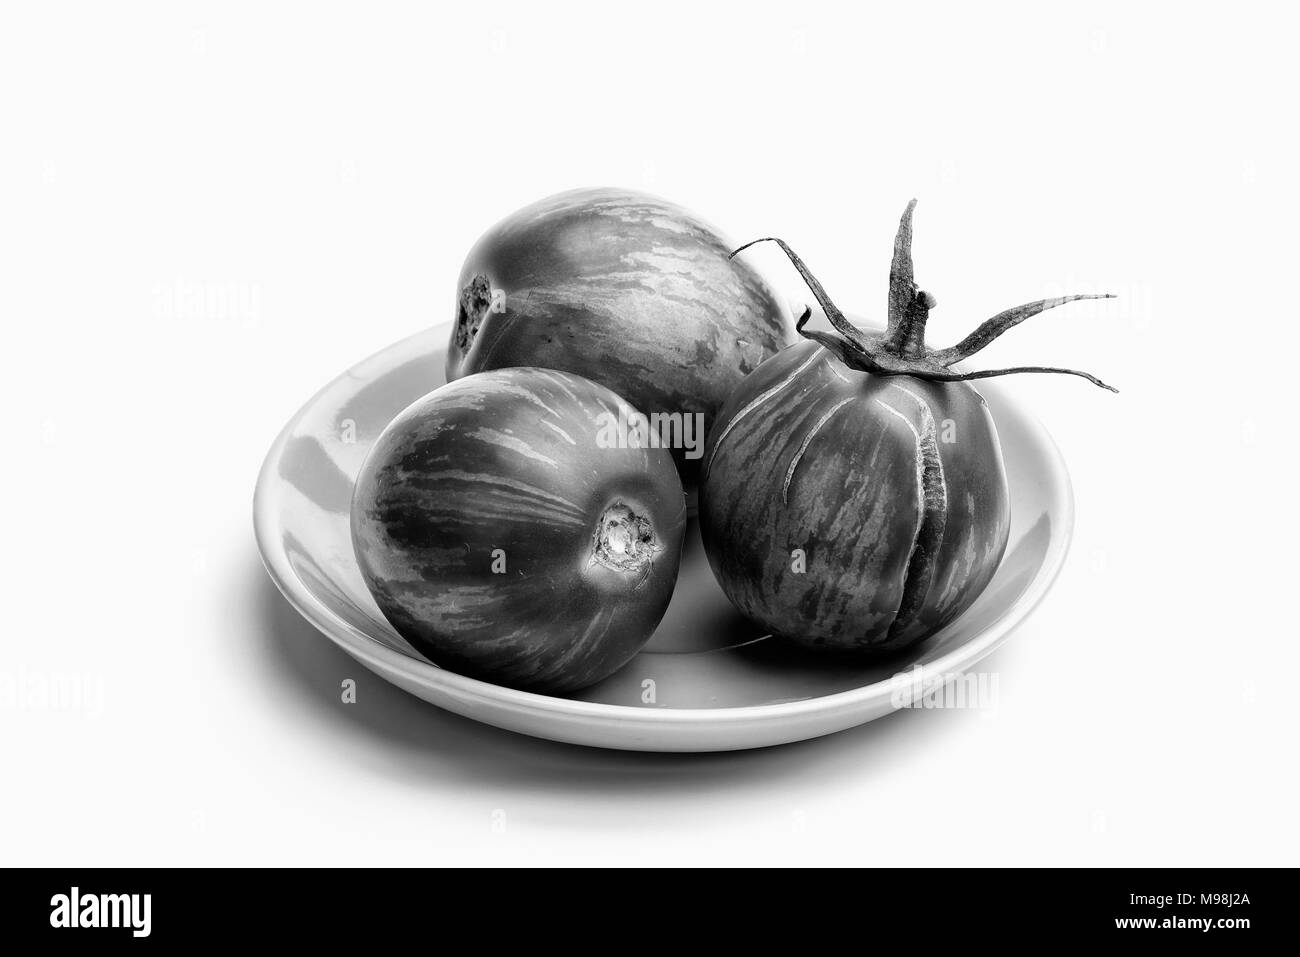 Three juicy zebra tomatoes in a little porcelain plate, isolated on white background - Stock Image